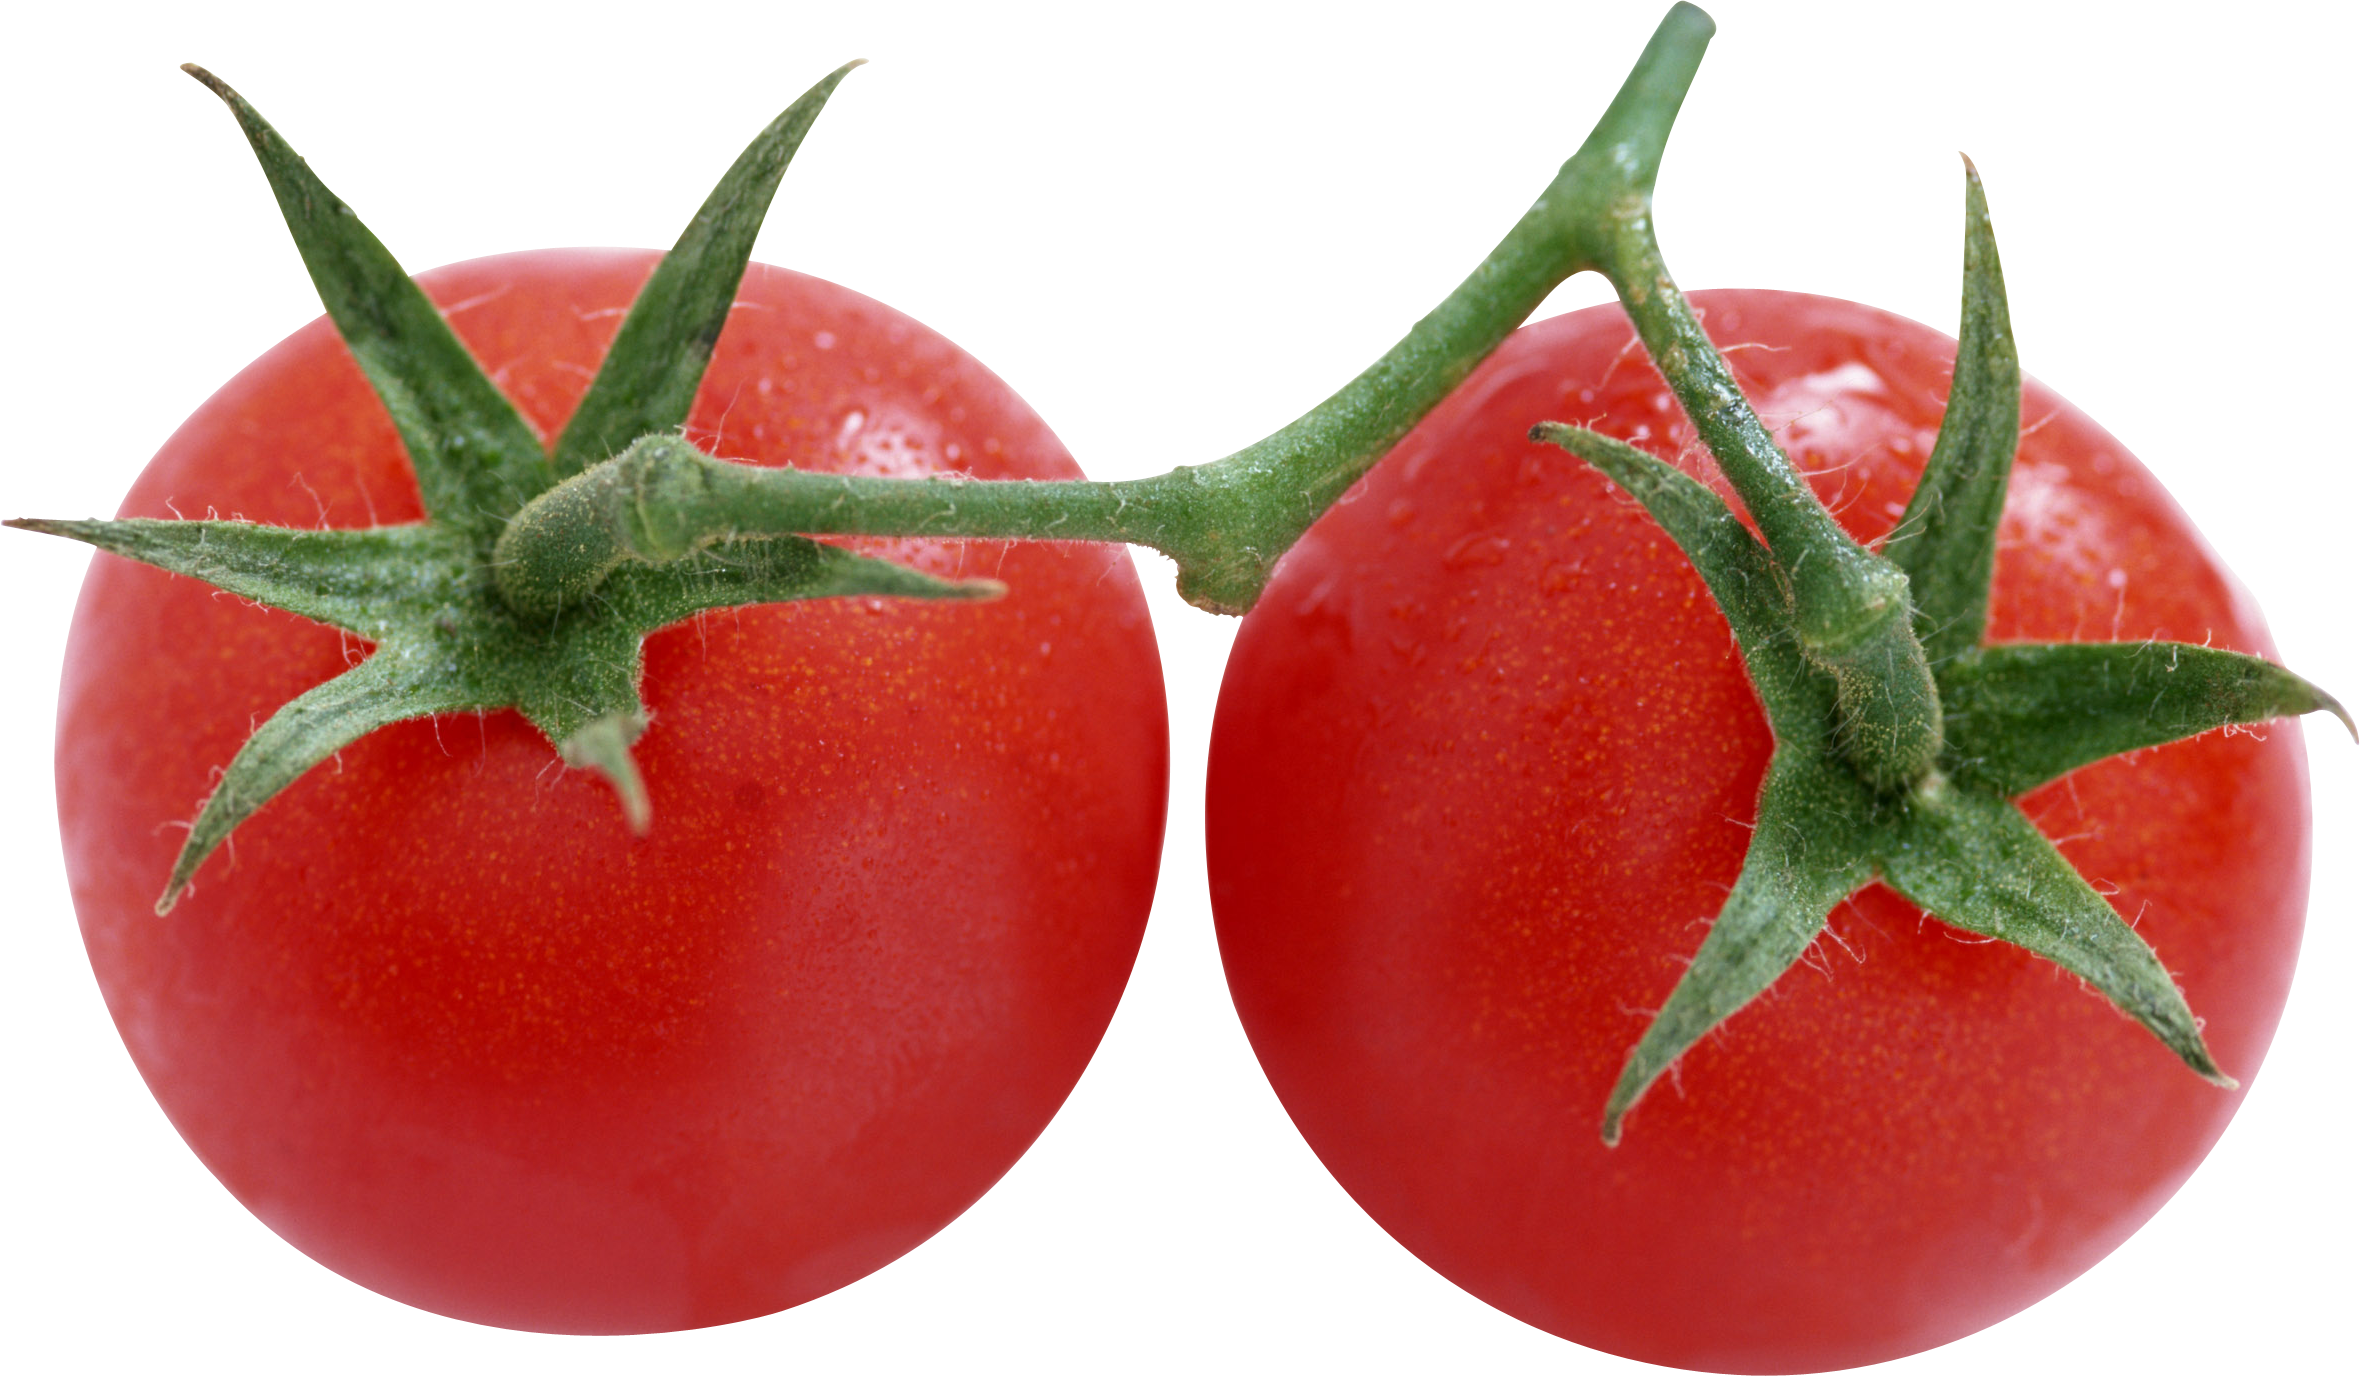 Tomato clipart two. Red tomatoes png image